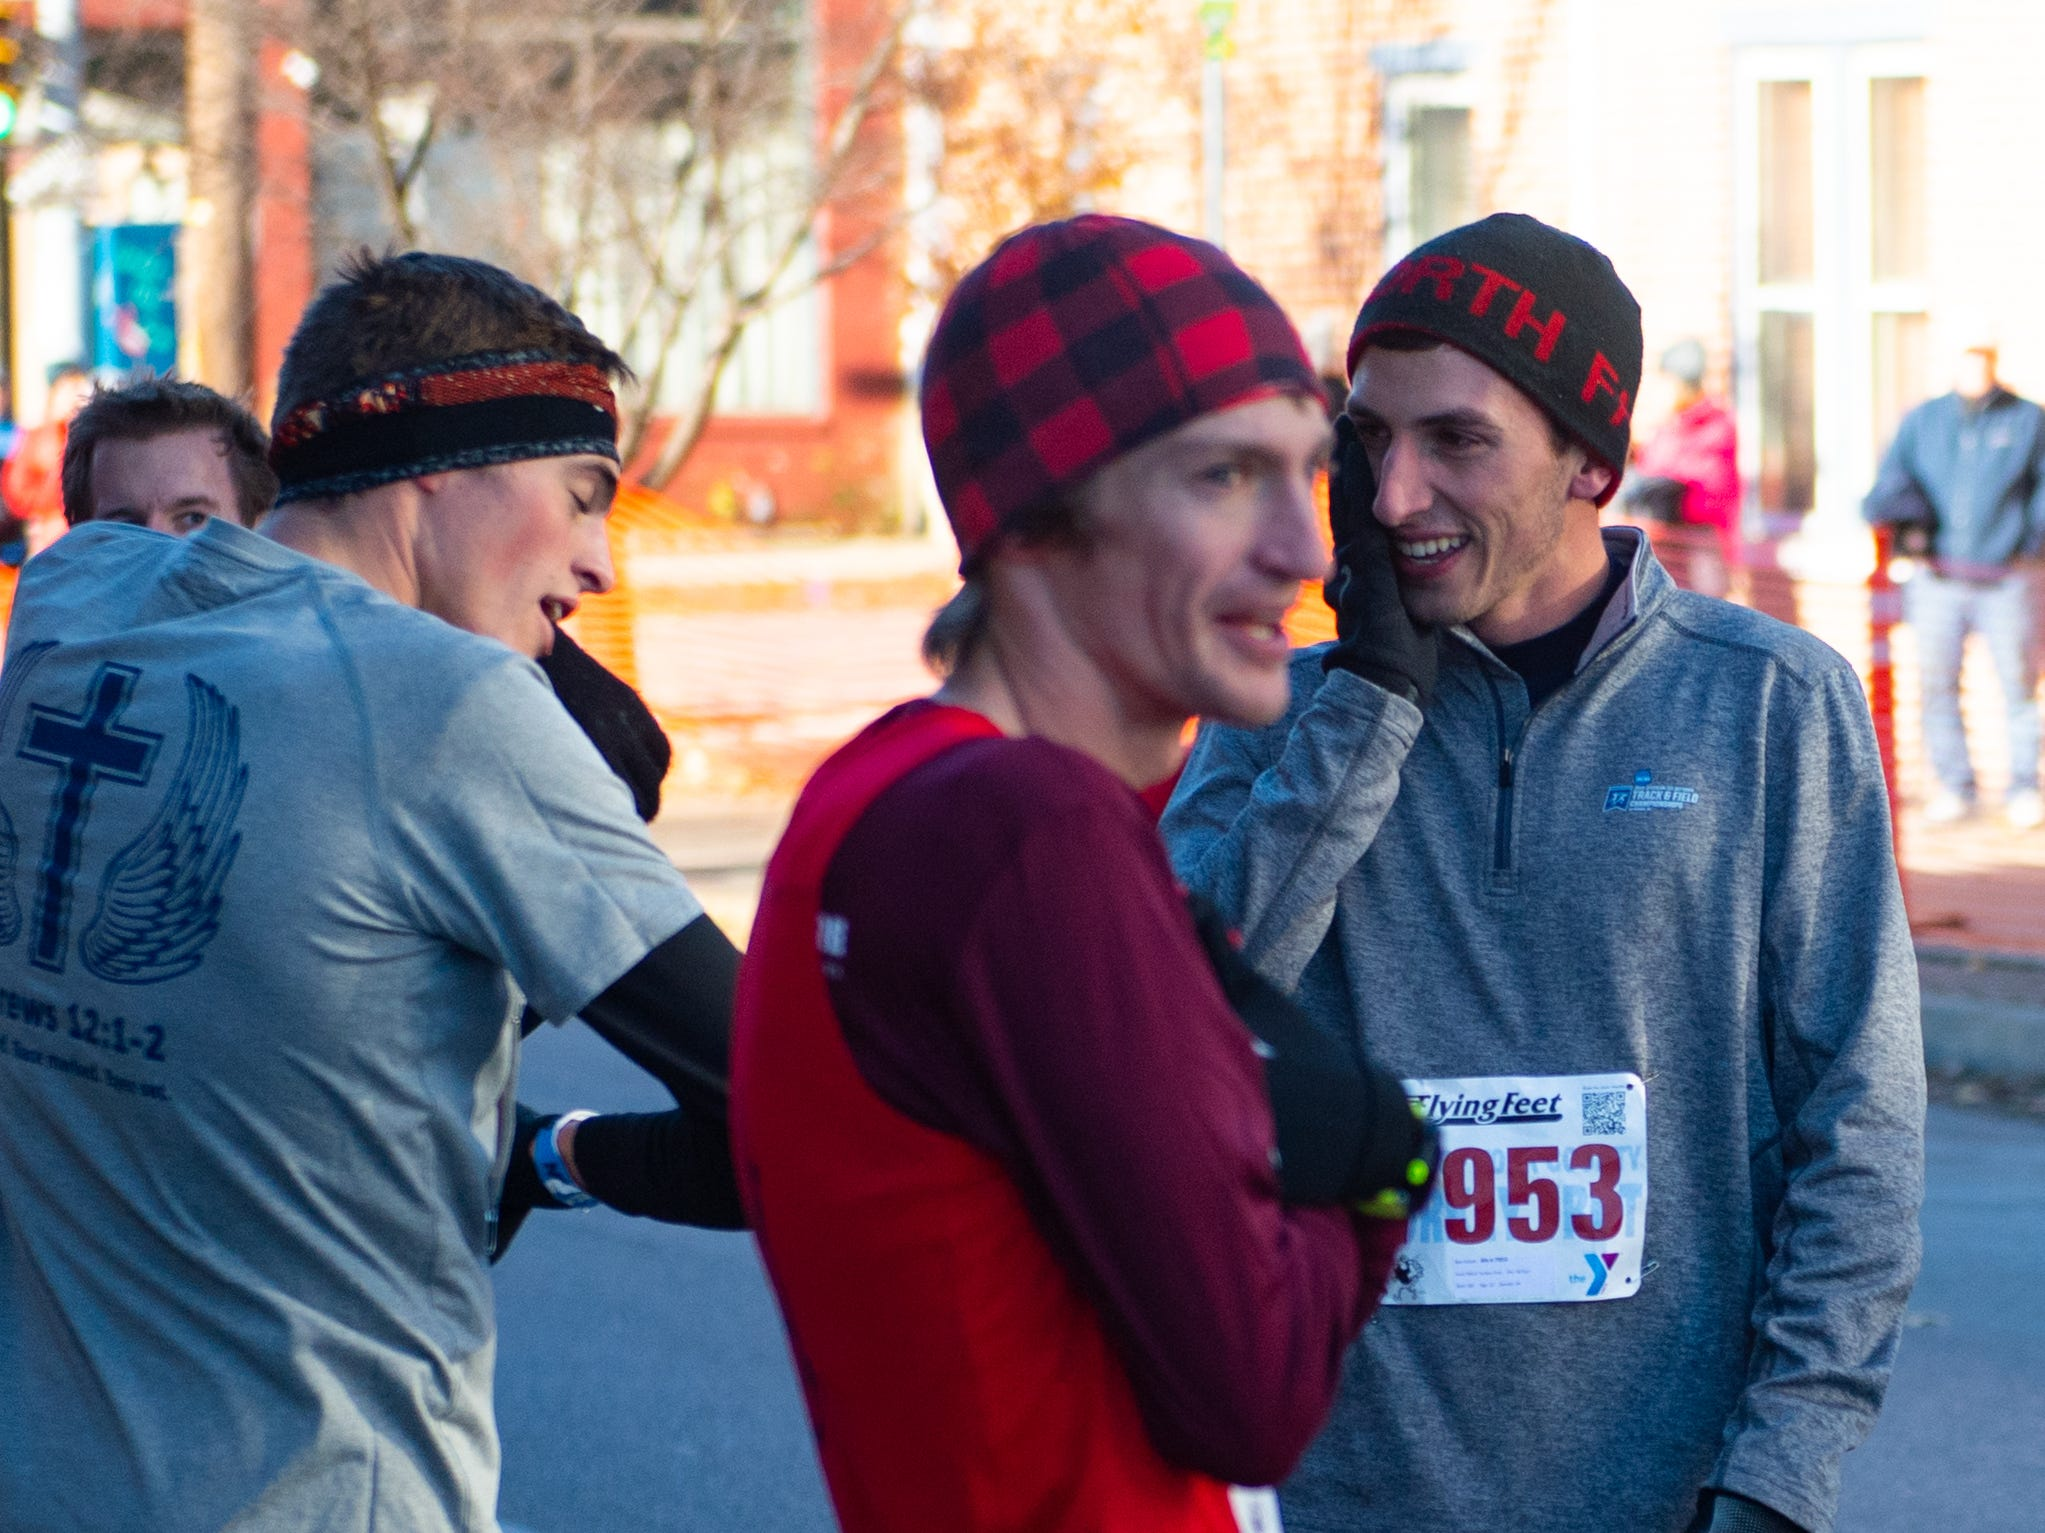 The fastest finishers ran the 5K in just over 15 minutes on Thanksgiving Day, November 22, 2018.